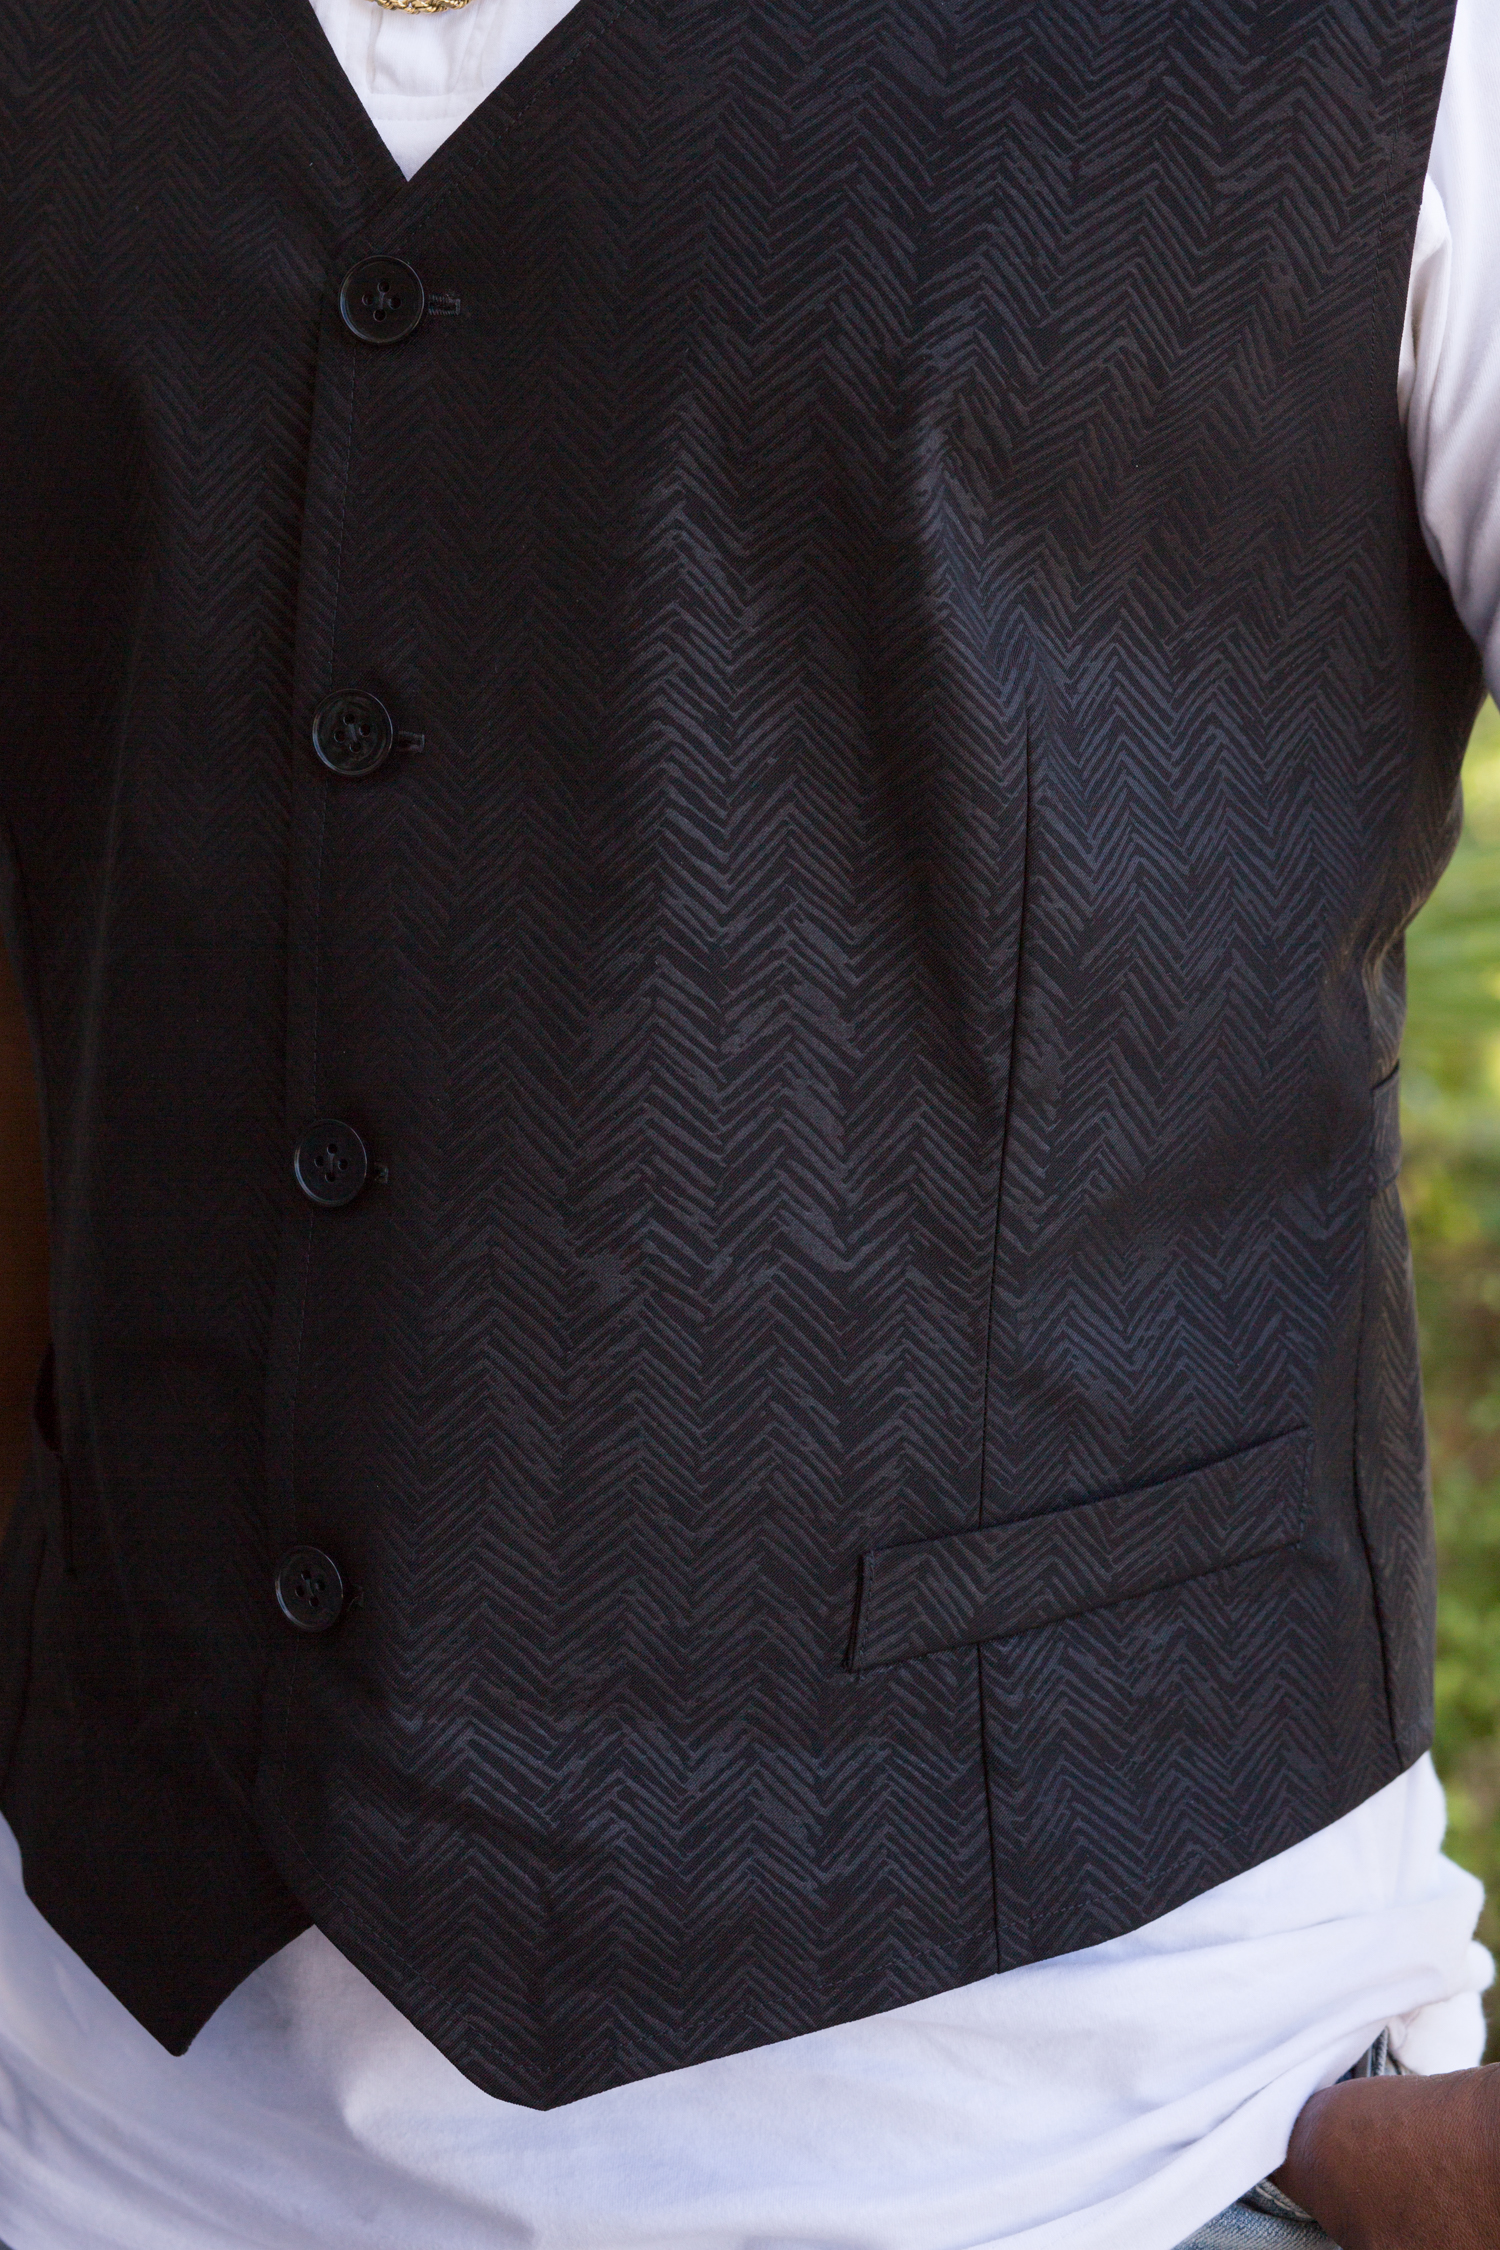 DIY Video Tutorial - How to Sew a Men's Vest